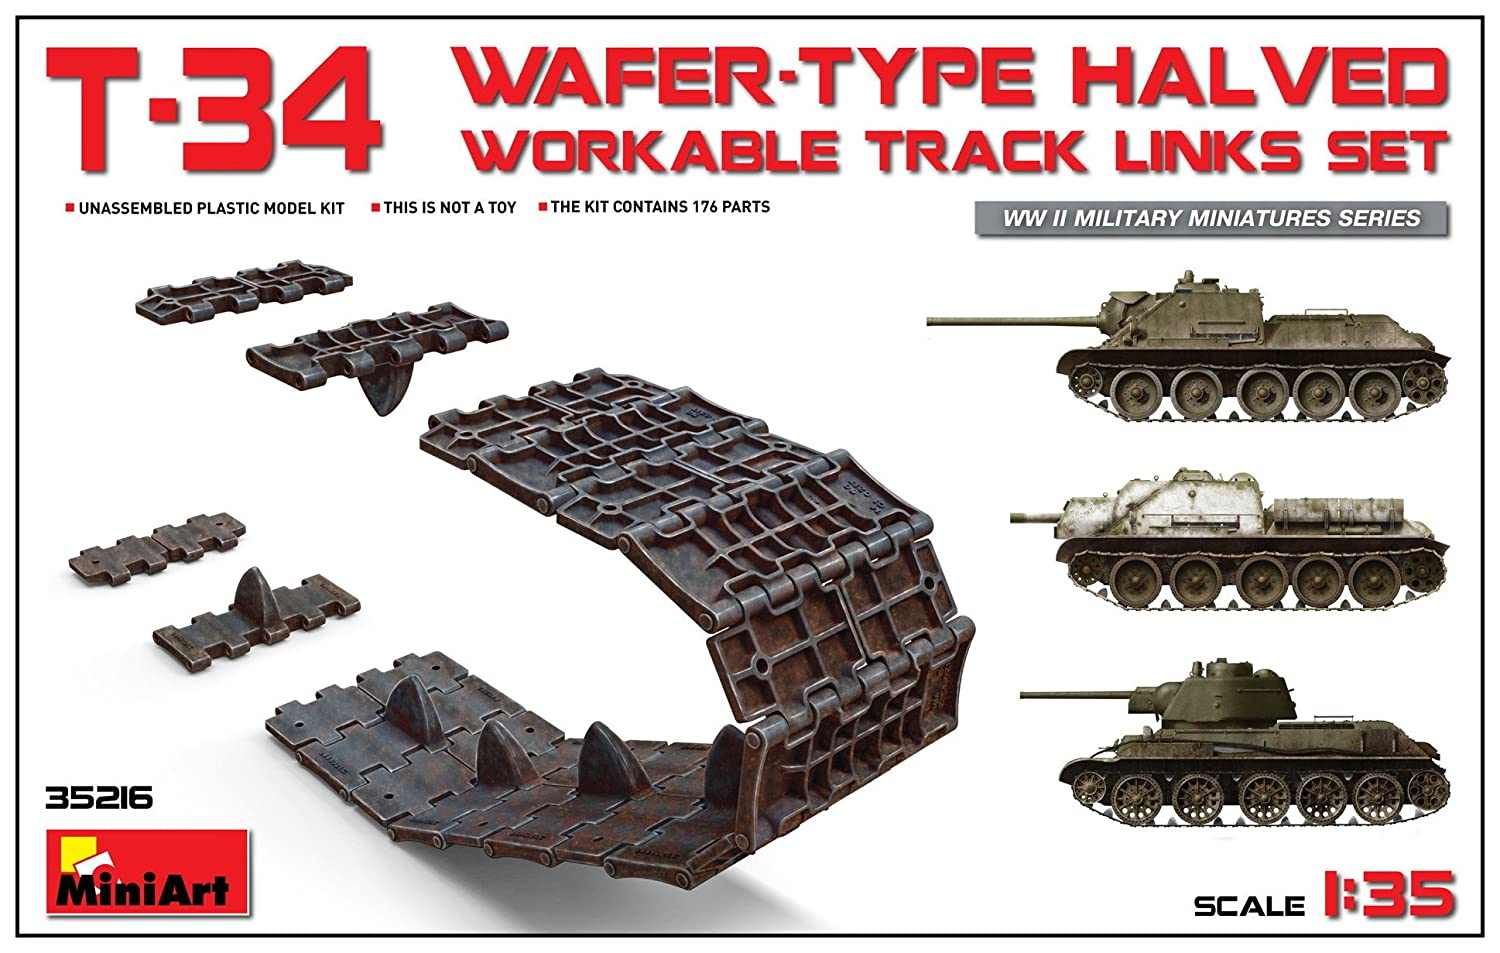 (MIN35216) - Miniart 1:35 - T-34 Wafer Type Halved Workable Track Links